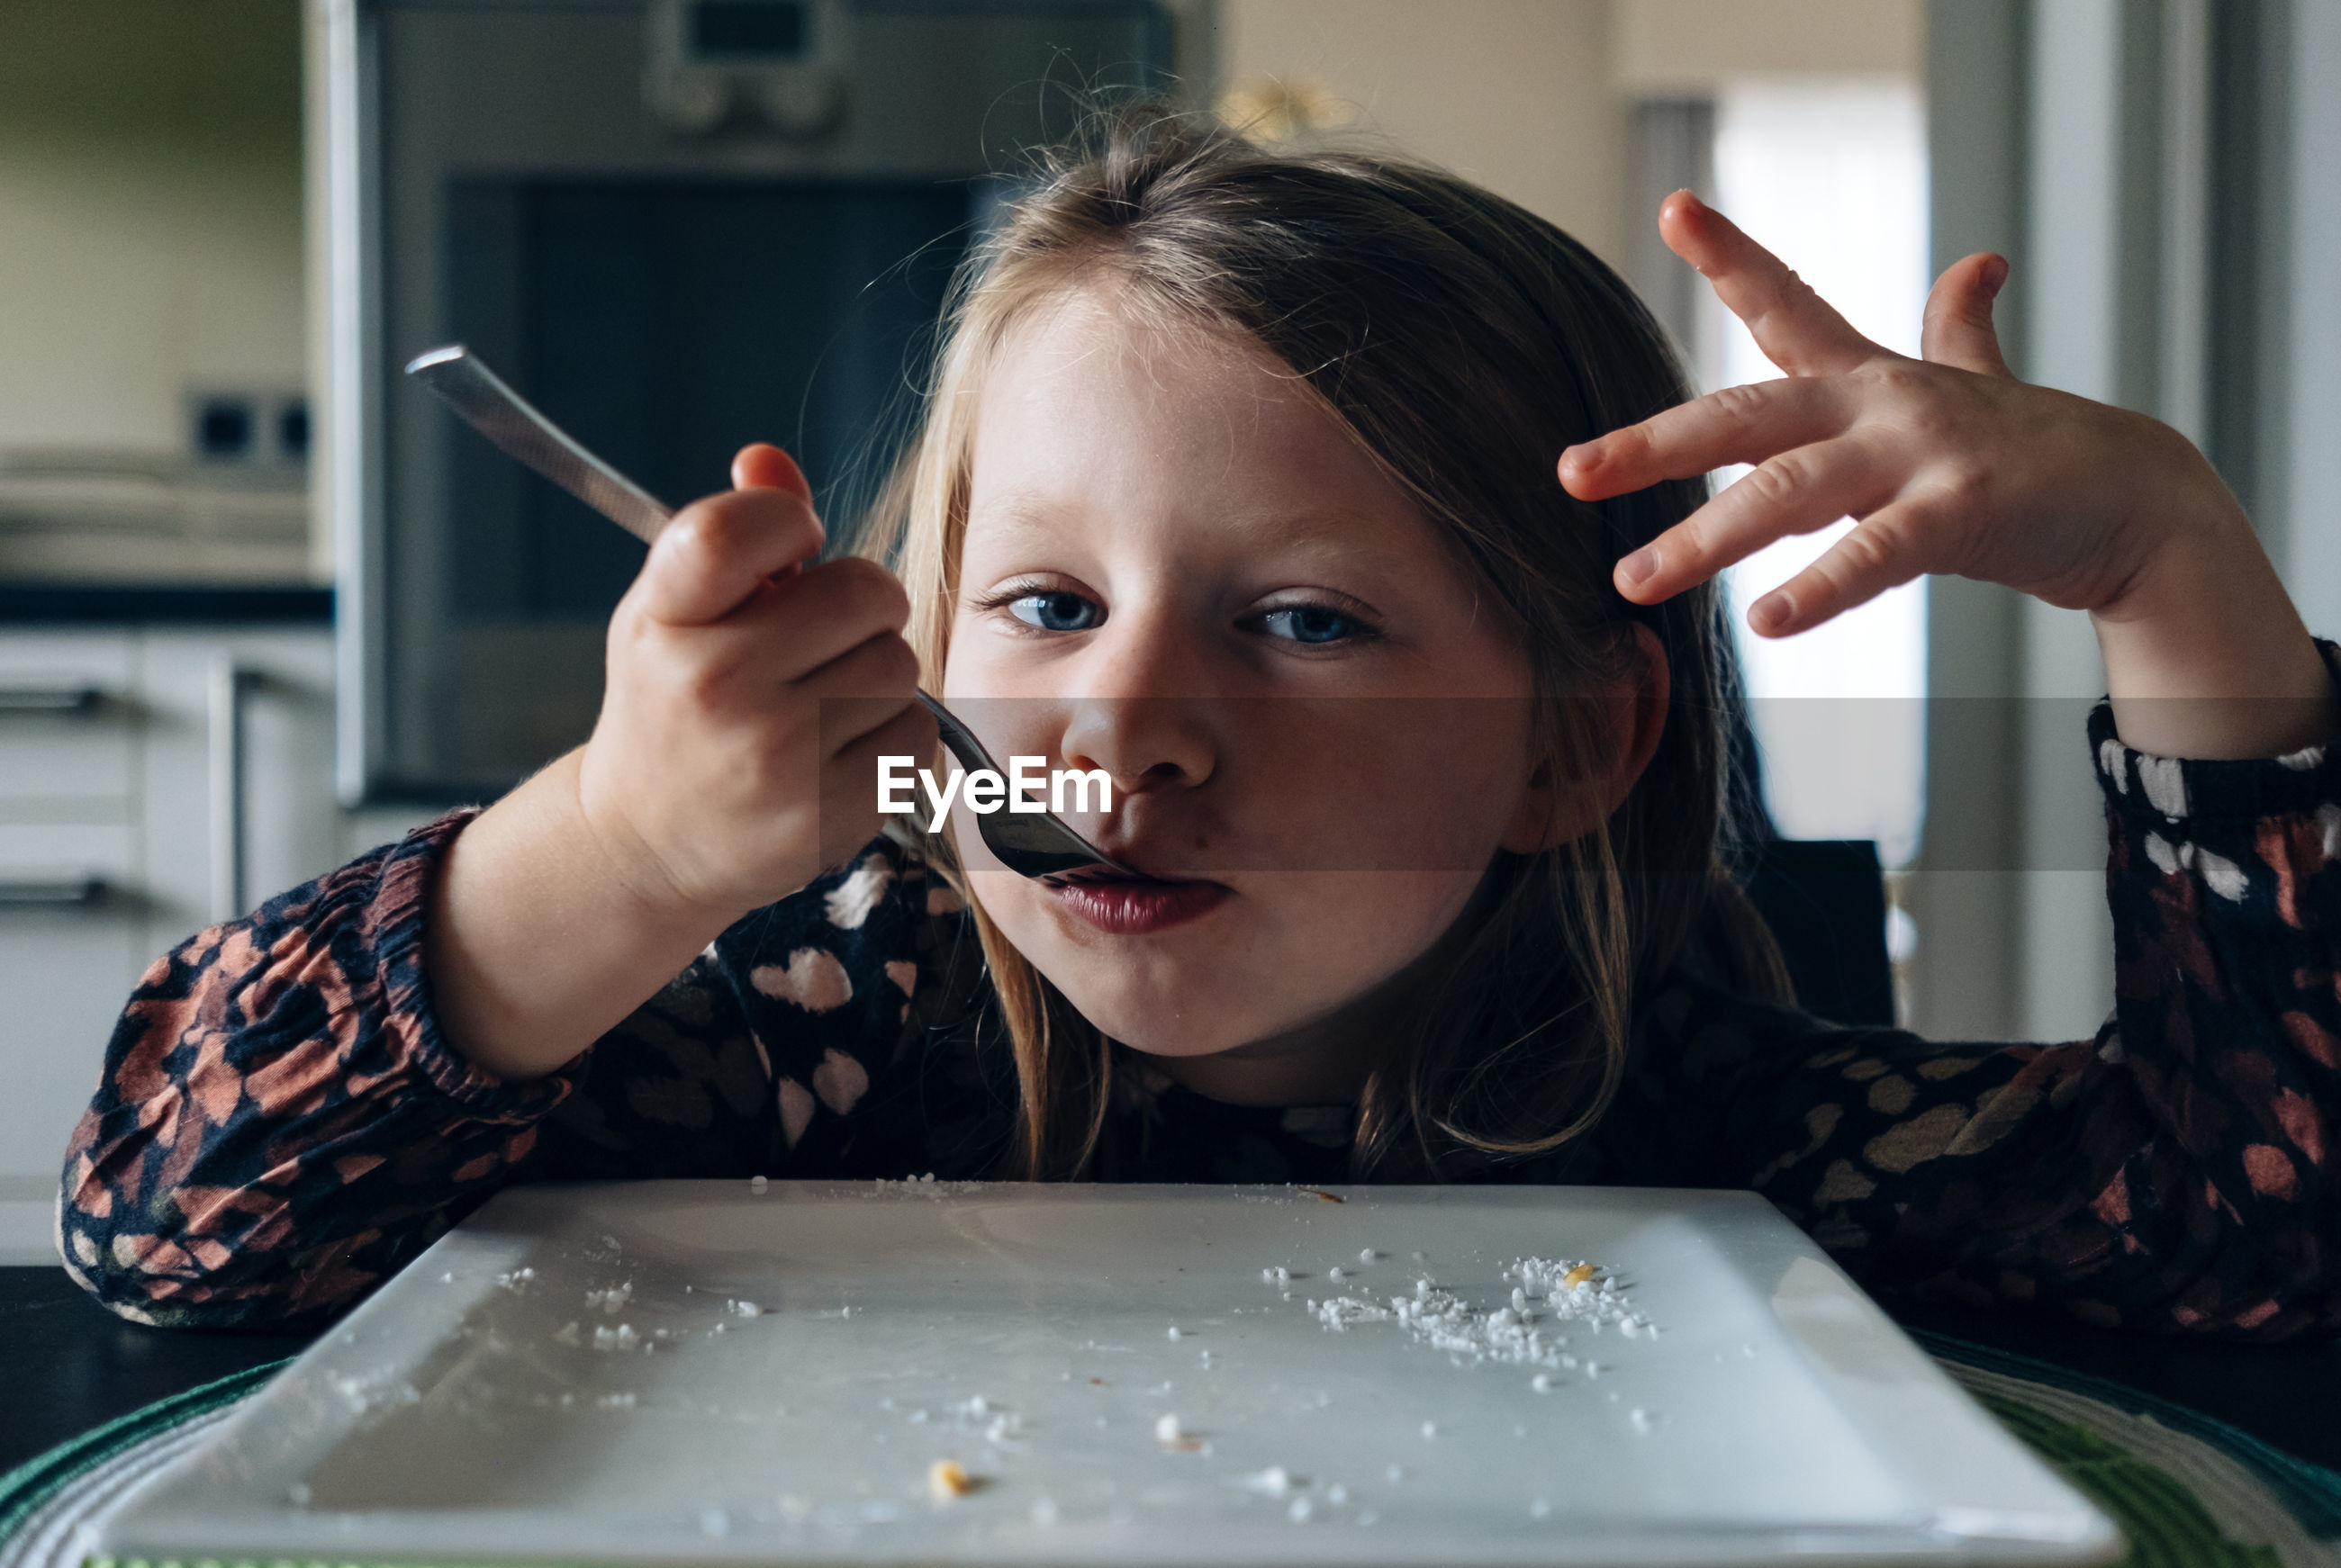 Portrait of girl eating food in plate at home